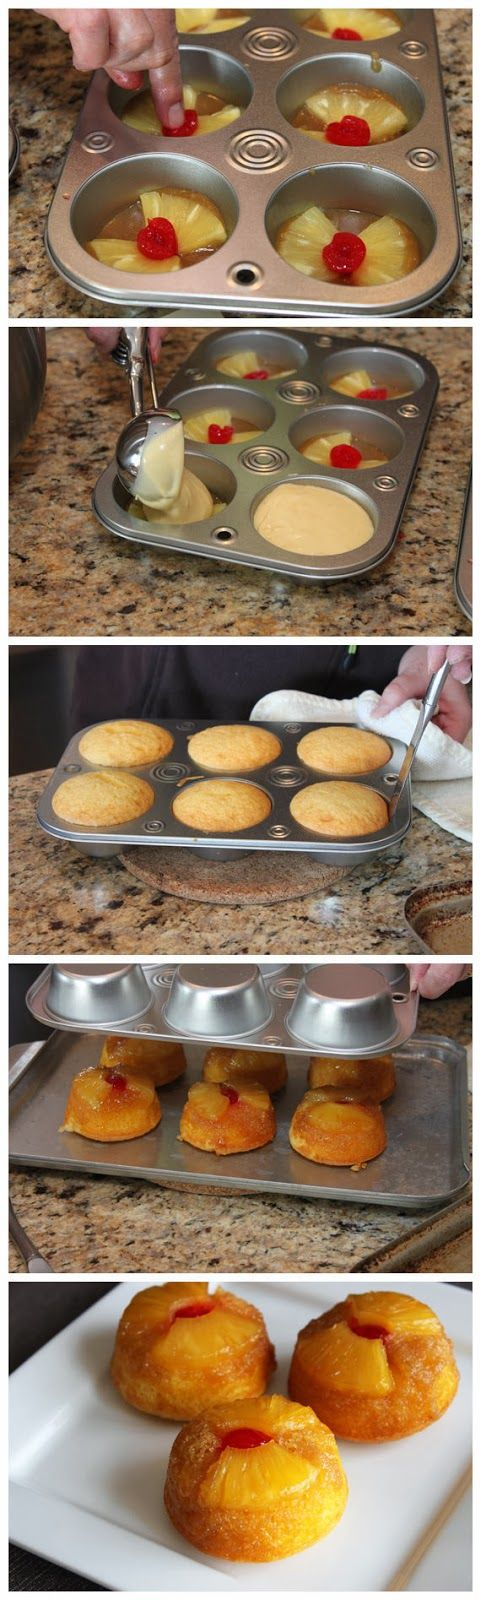 Pineapple upside down CUPCAKES!- use Betty Crocker gf cake mix